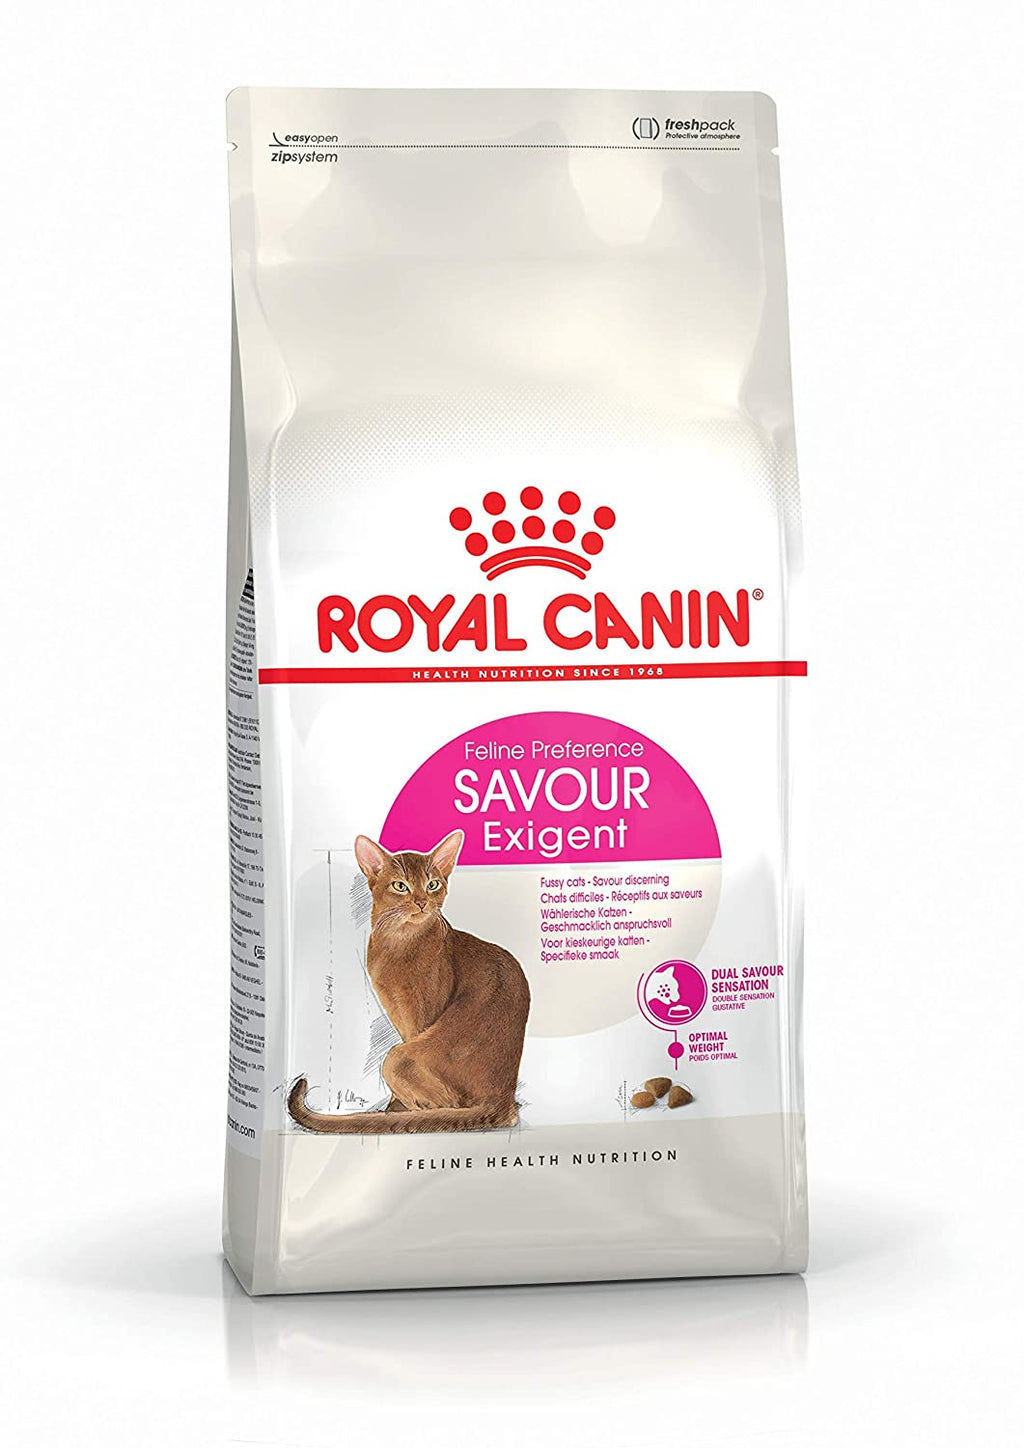 Royal Canin Exigent Savour Sensation Dry Cat Food - Pet Chum